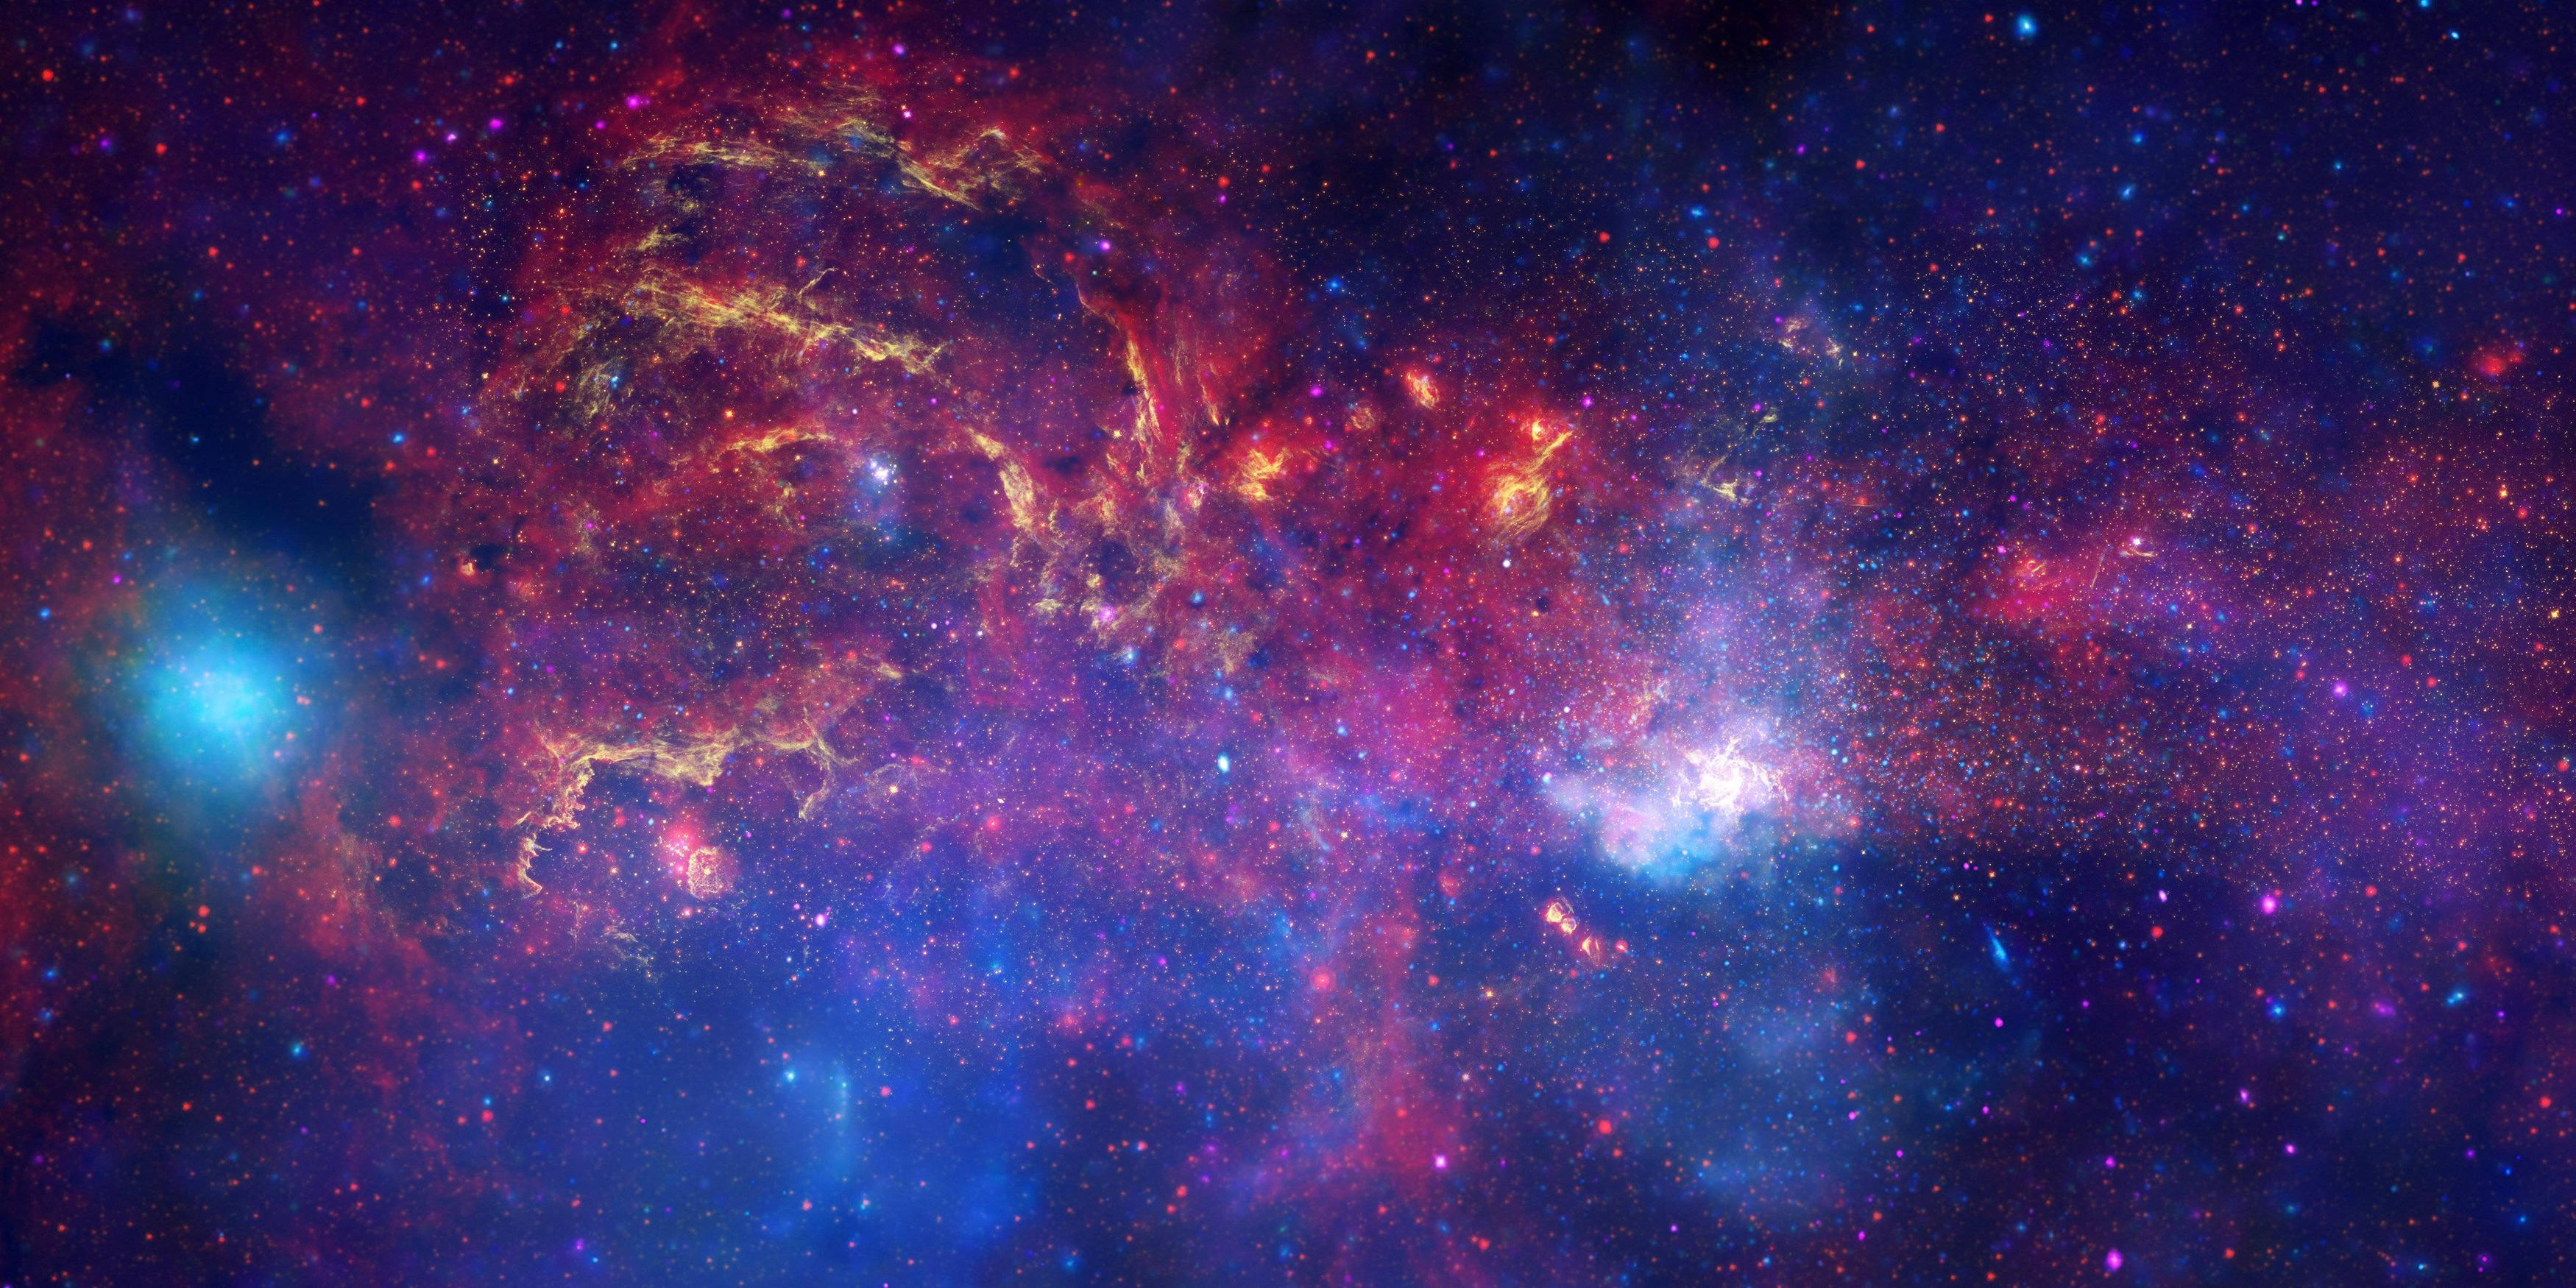 universe wallpapers hd - wallpaper cave